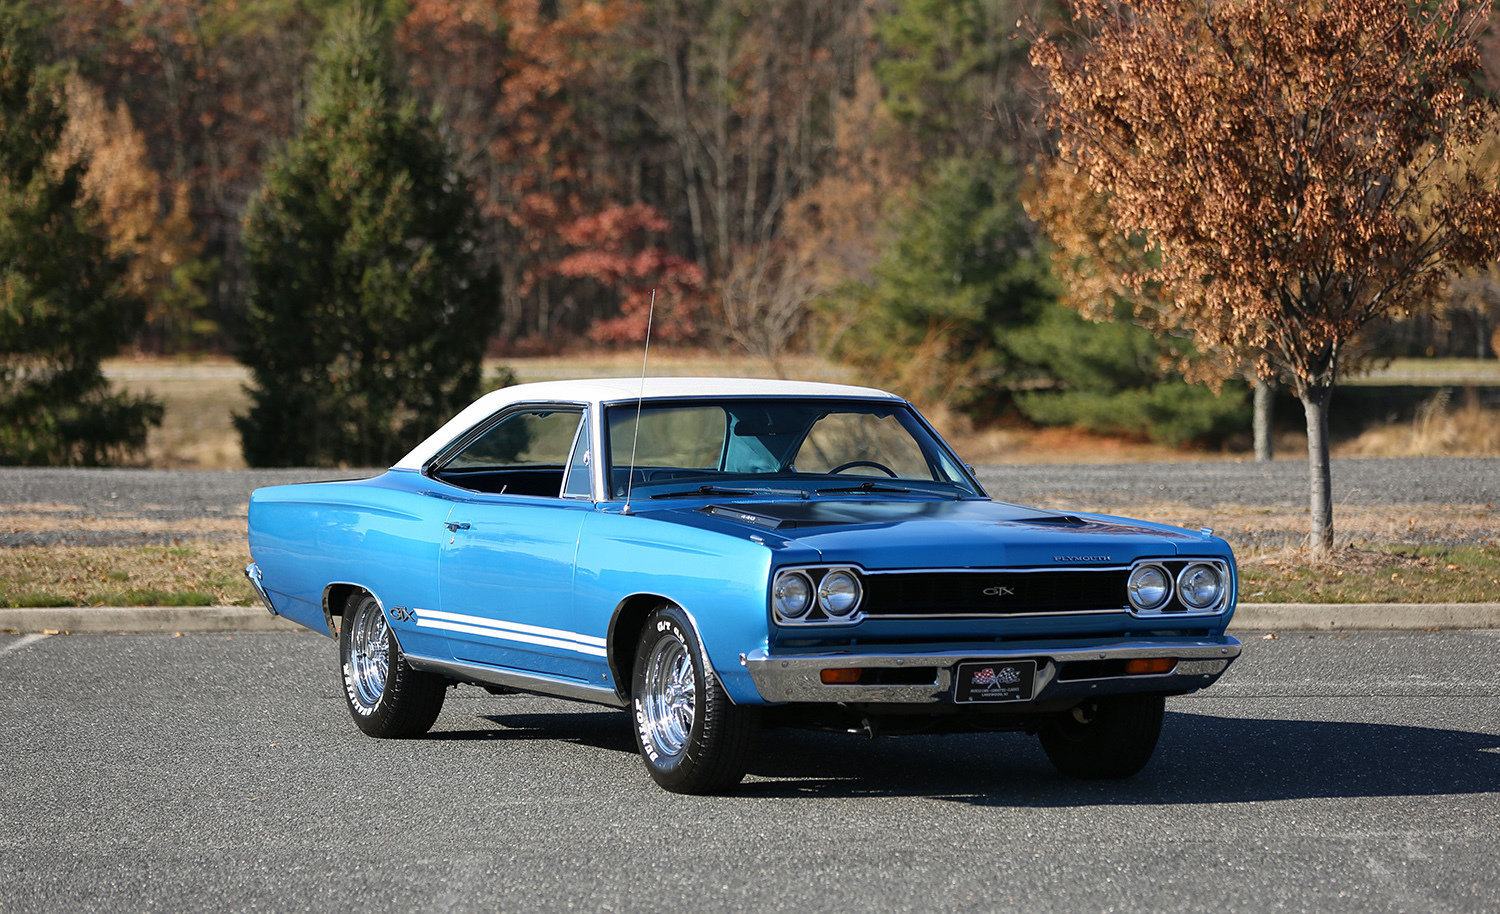 1971 Plymouth GTX for sale #2191462 - Hemmings Motor News